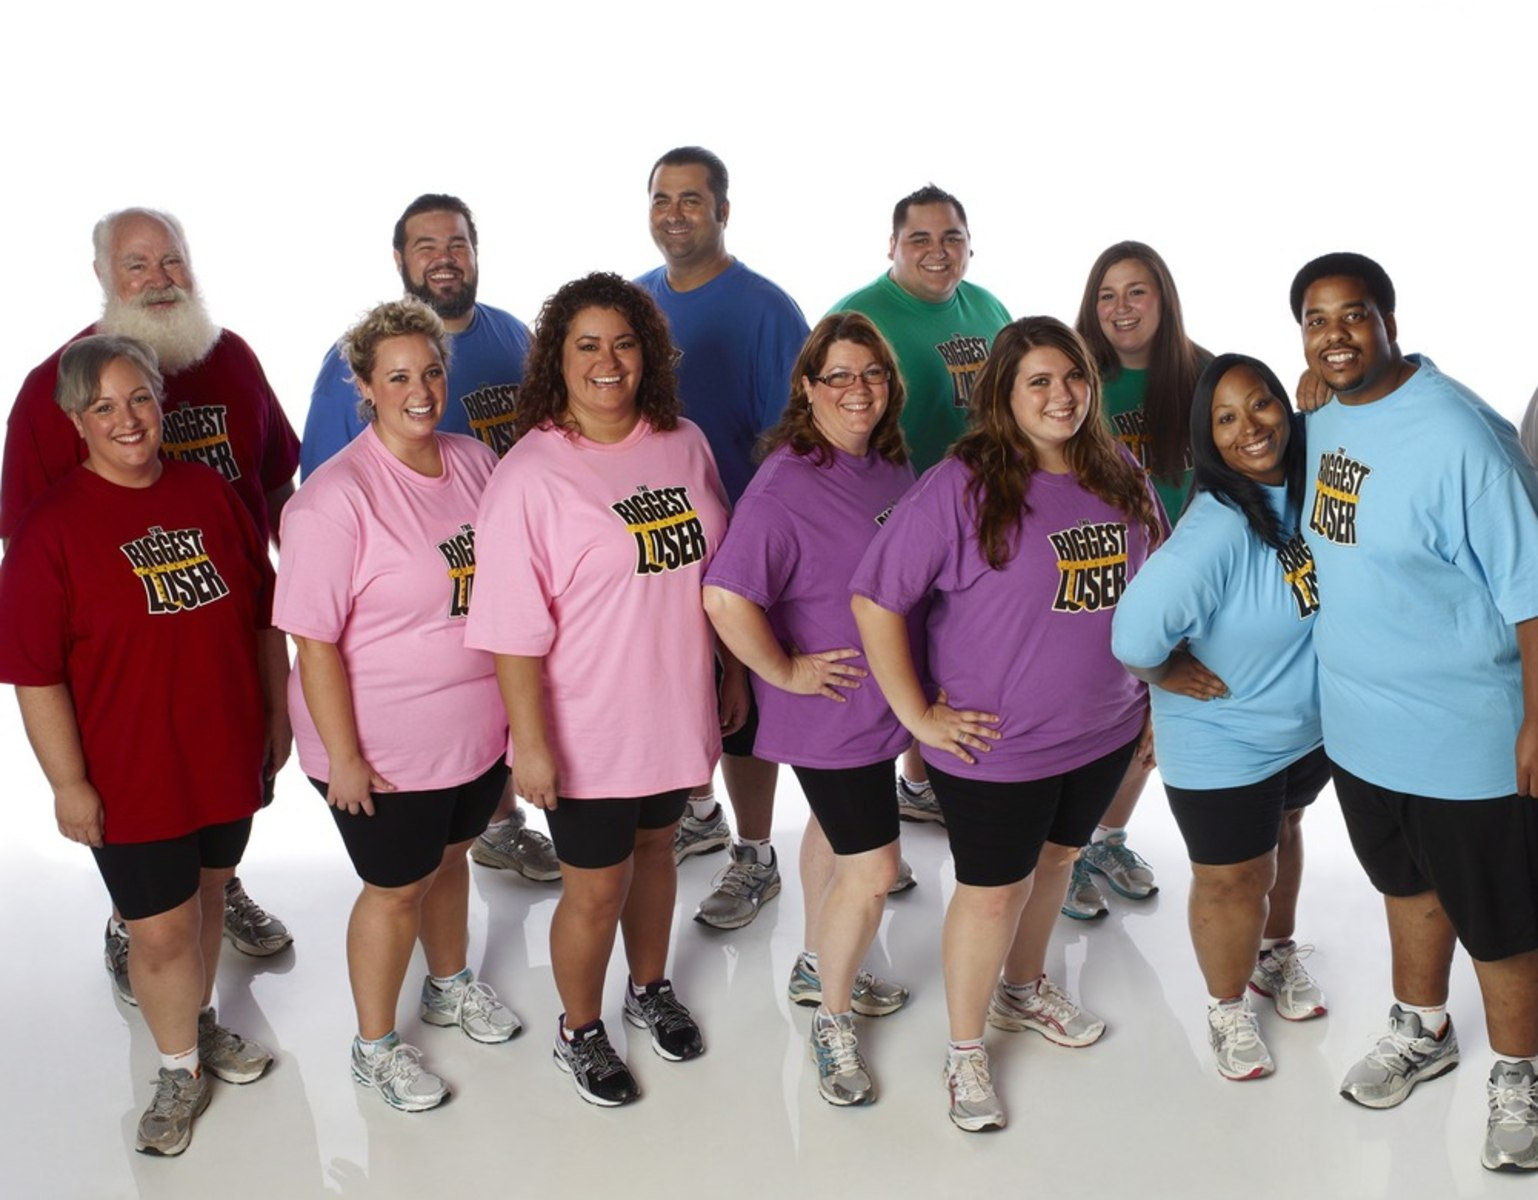 Image: The Biggest Loser season 13